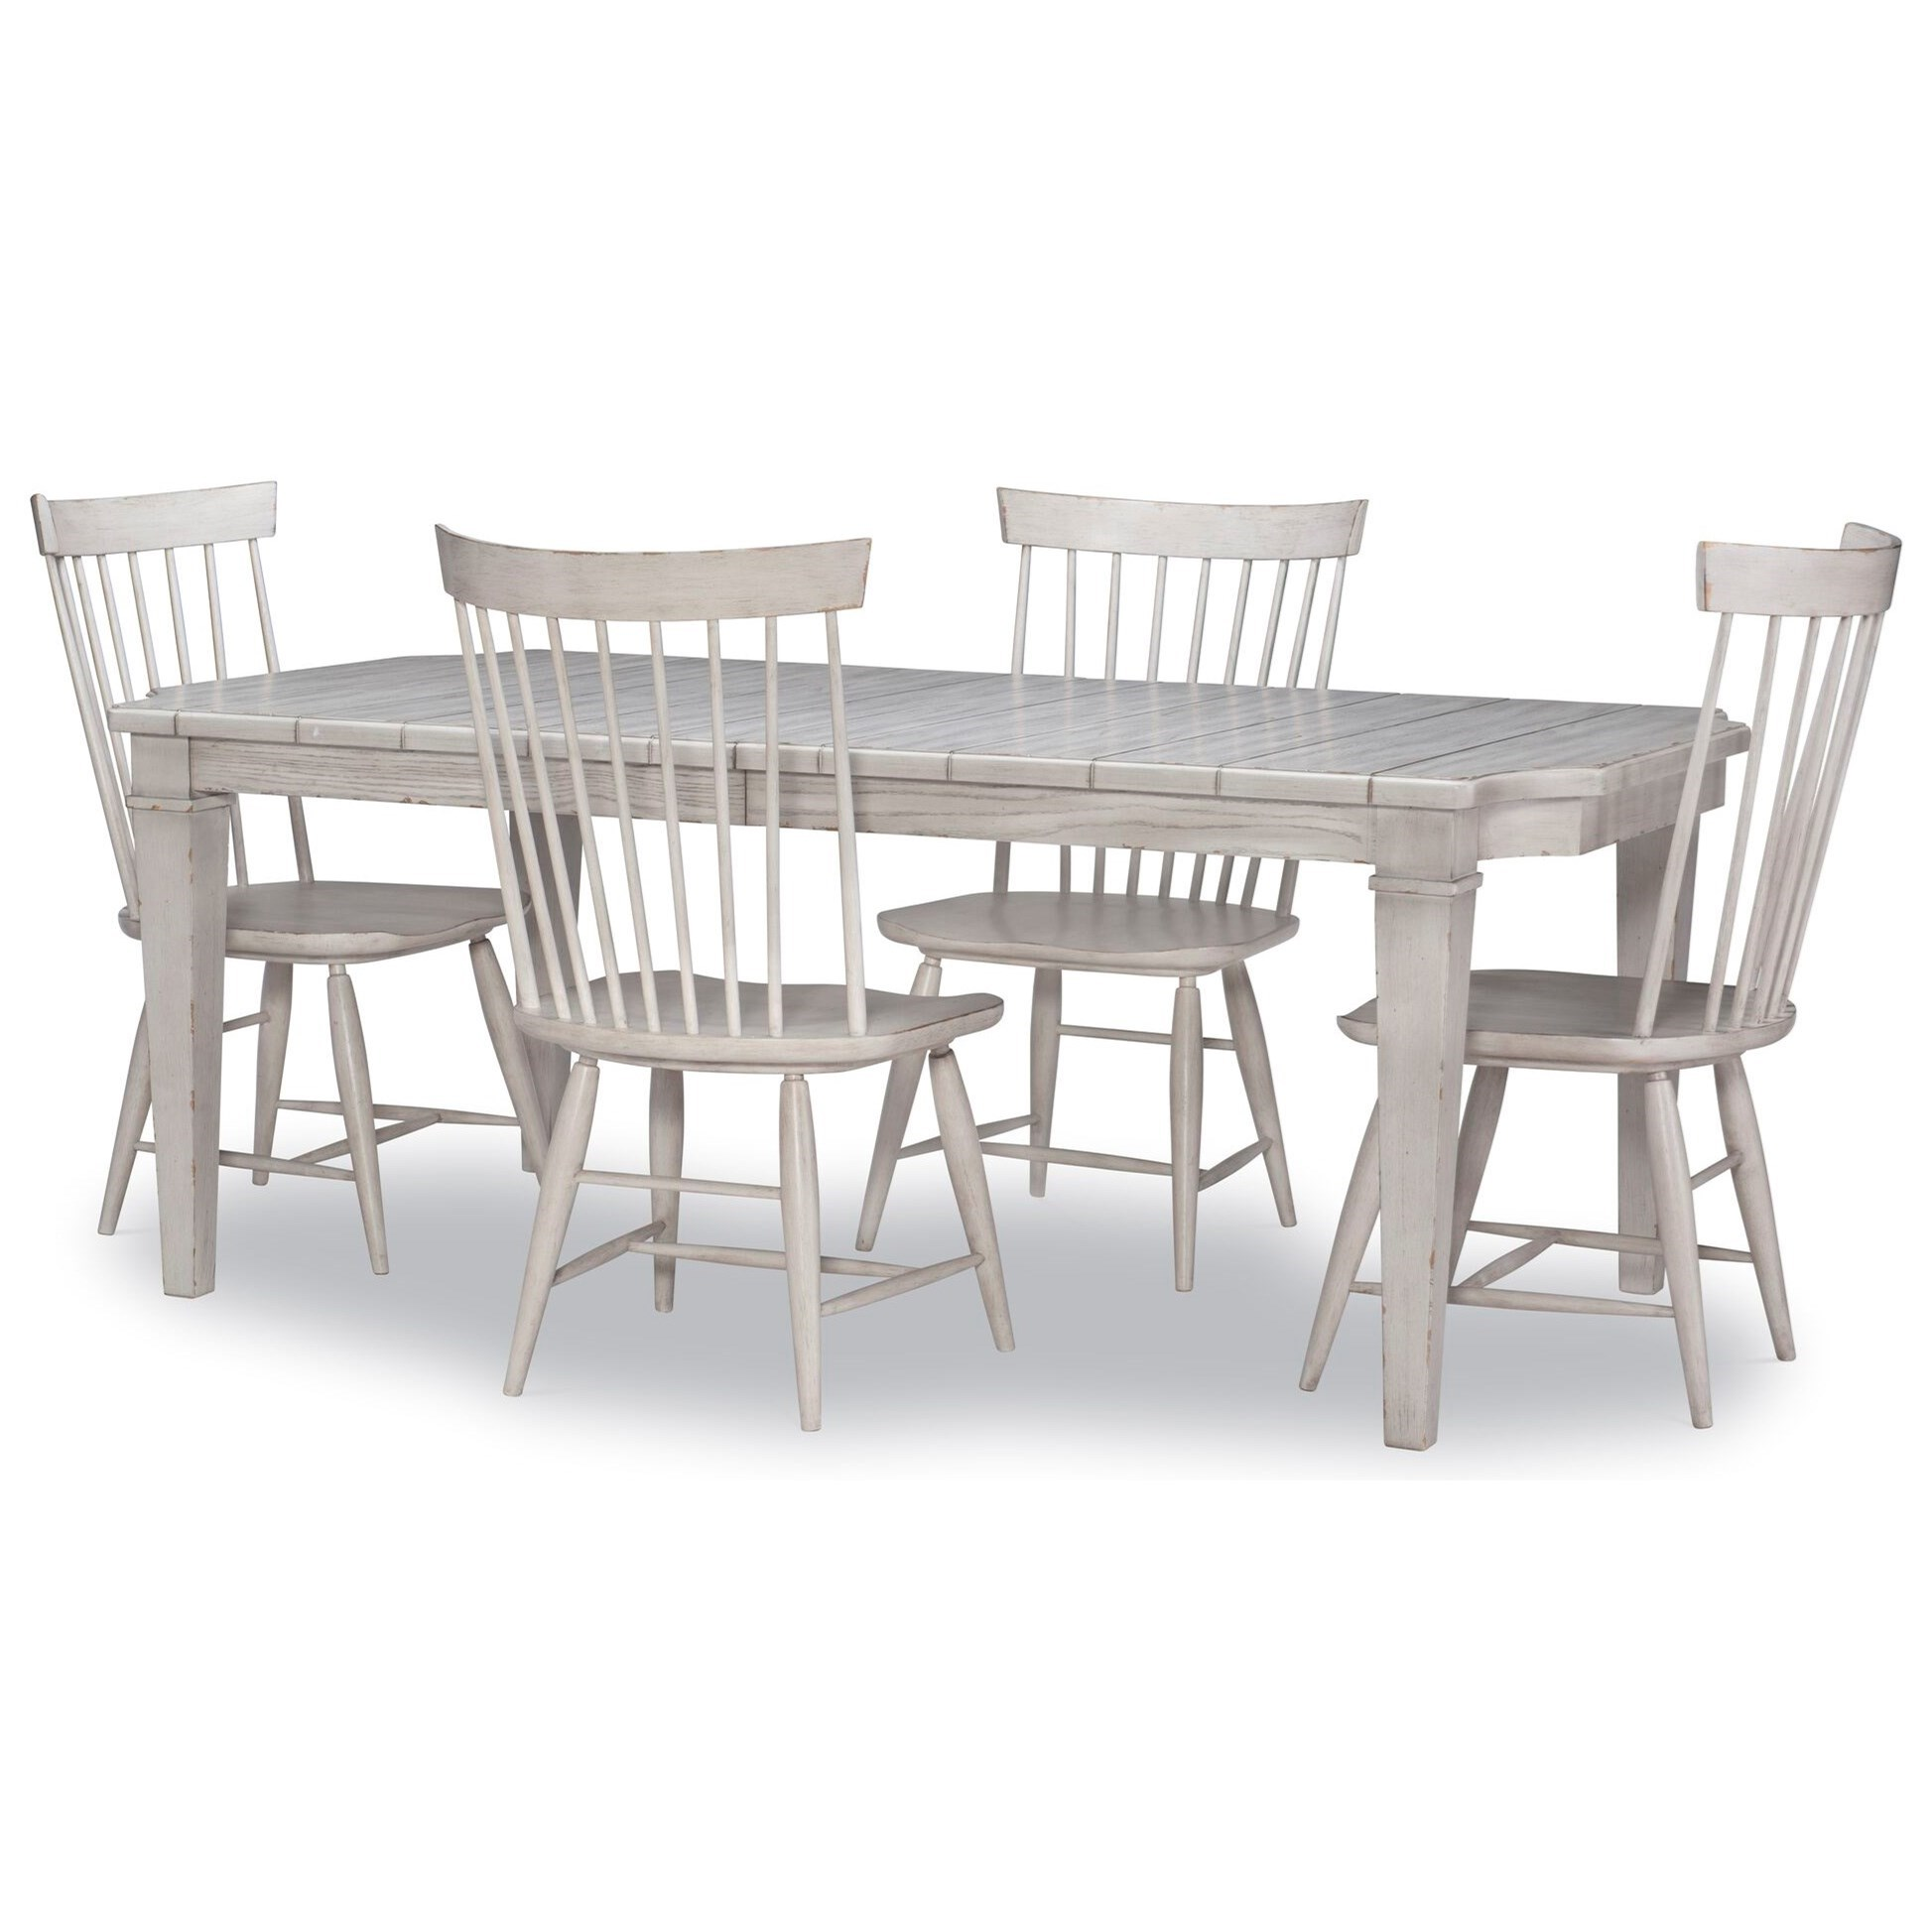 Belhaven 5-Piece Table and Chair Set by Legacy Classic at Stoney Creek Furniture